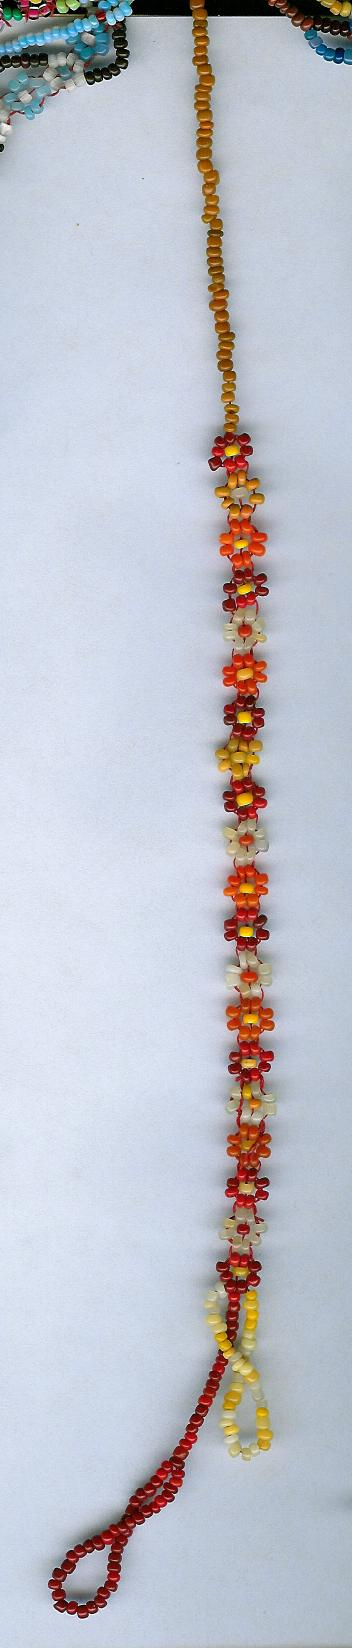 Red Lazy Daisy Chain by Refiner